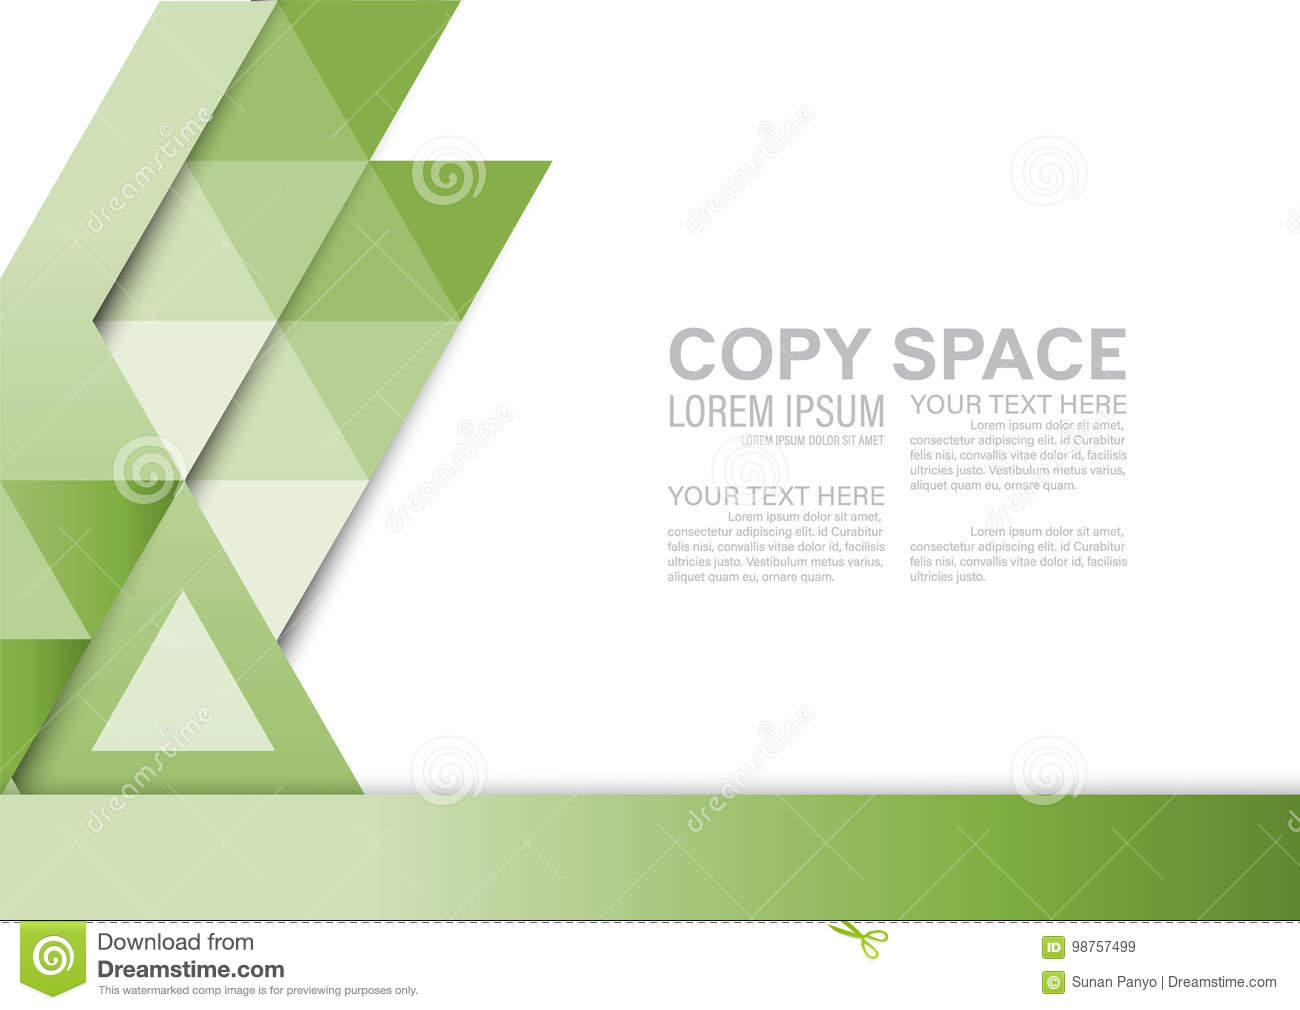 Greenery Presentation Layout Design Template Annual Report Cover - Presentation cover page template